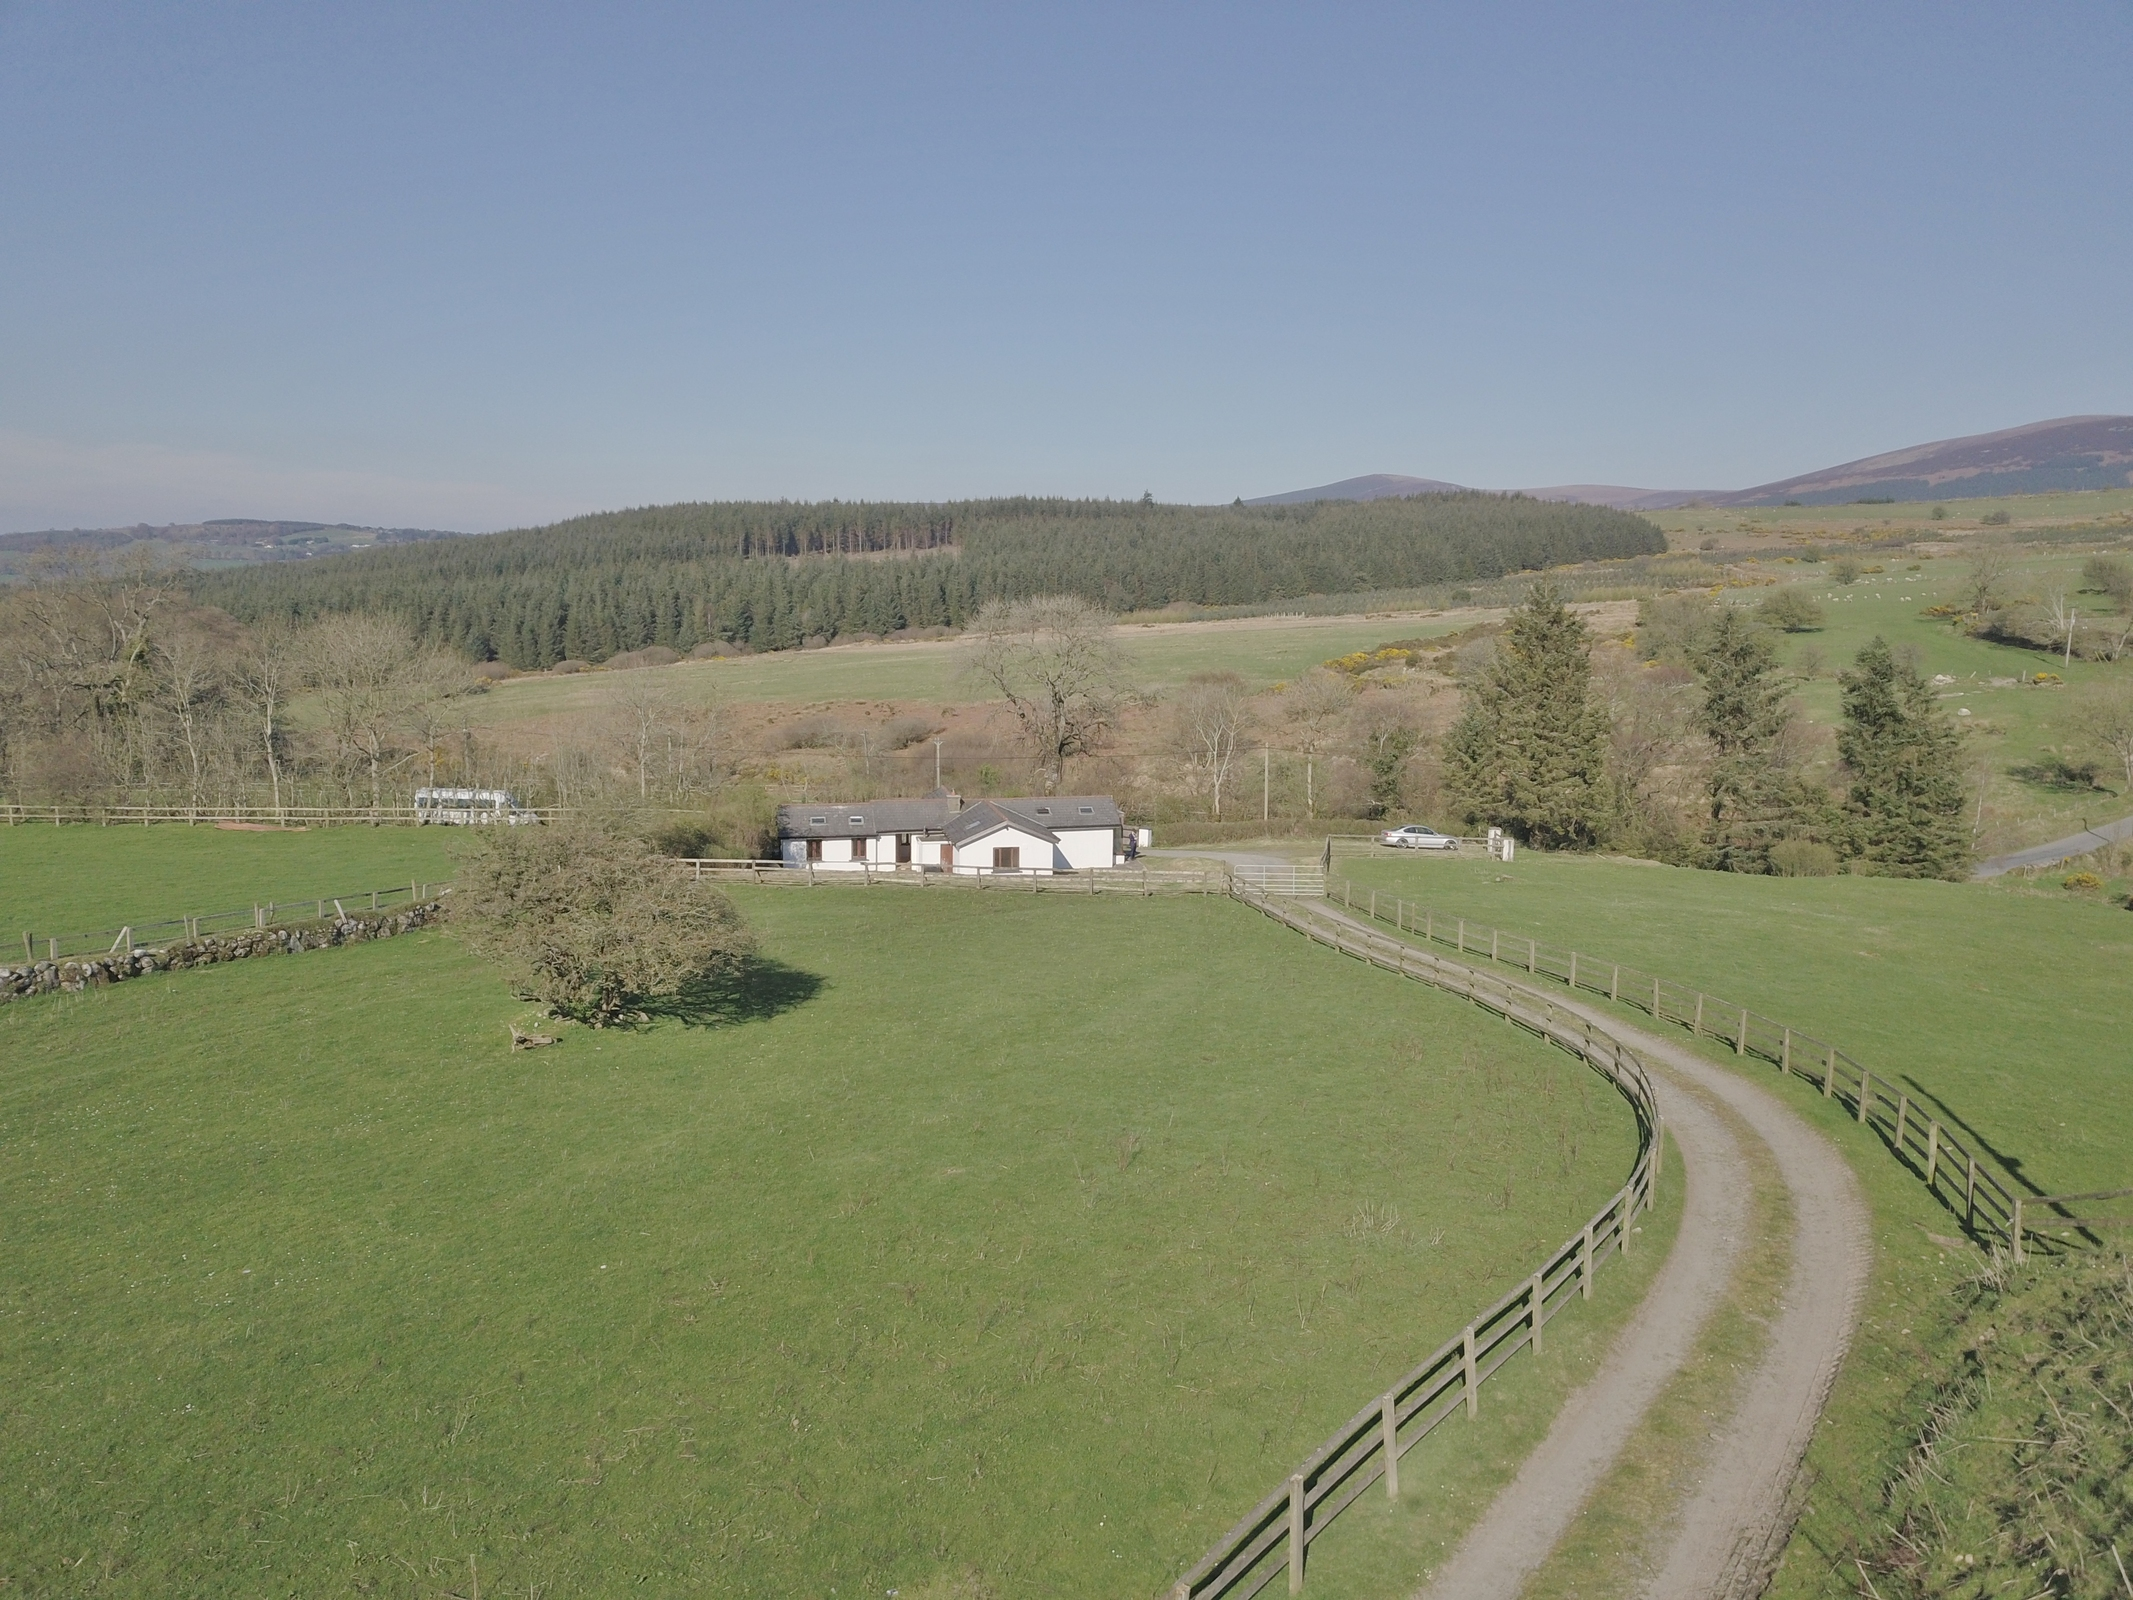 5.53 Acres / 2.24 Ha., Oldcourt, Manor Kilbride, Blessington, Co. Wicklow